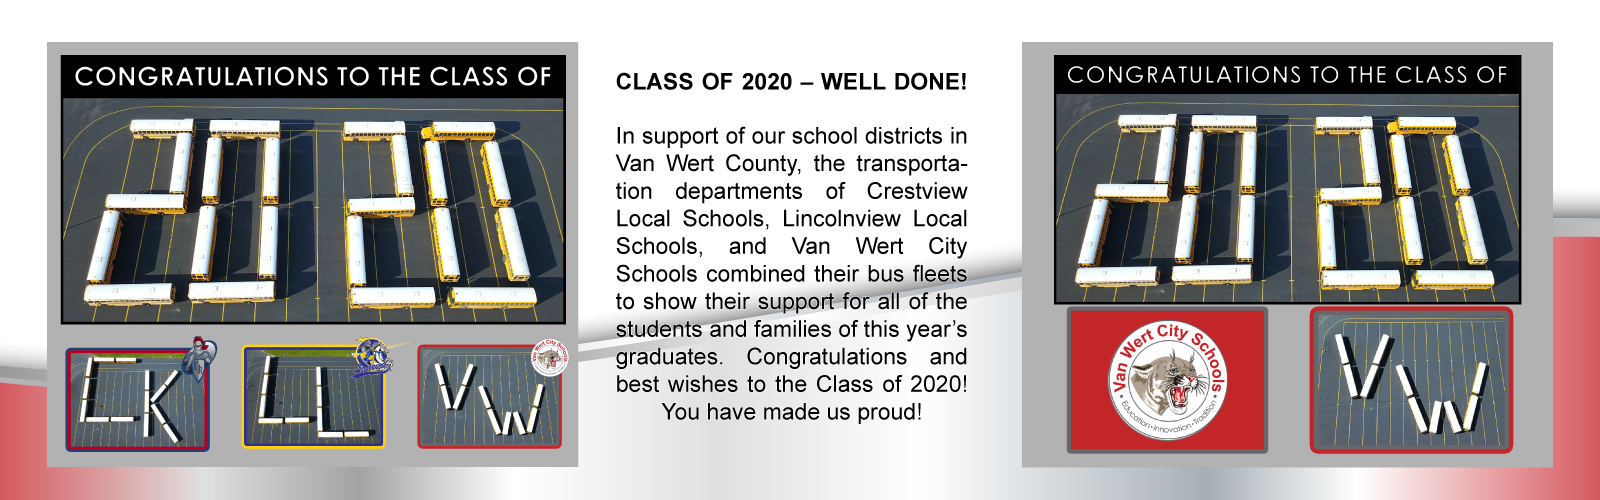 Congratulations class of 2020 from Van Wert City Schools, Crestview and Lincolnview transportation department with an image of school buses spelling out 2020